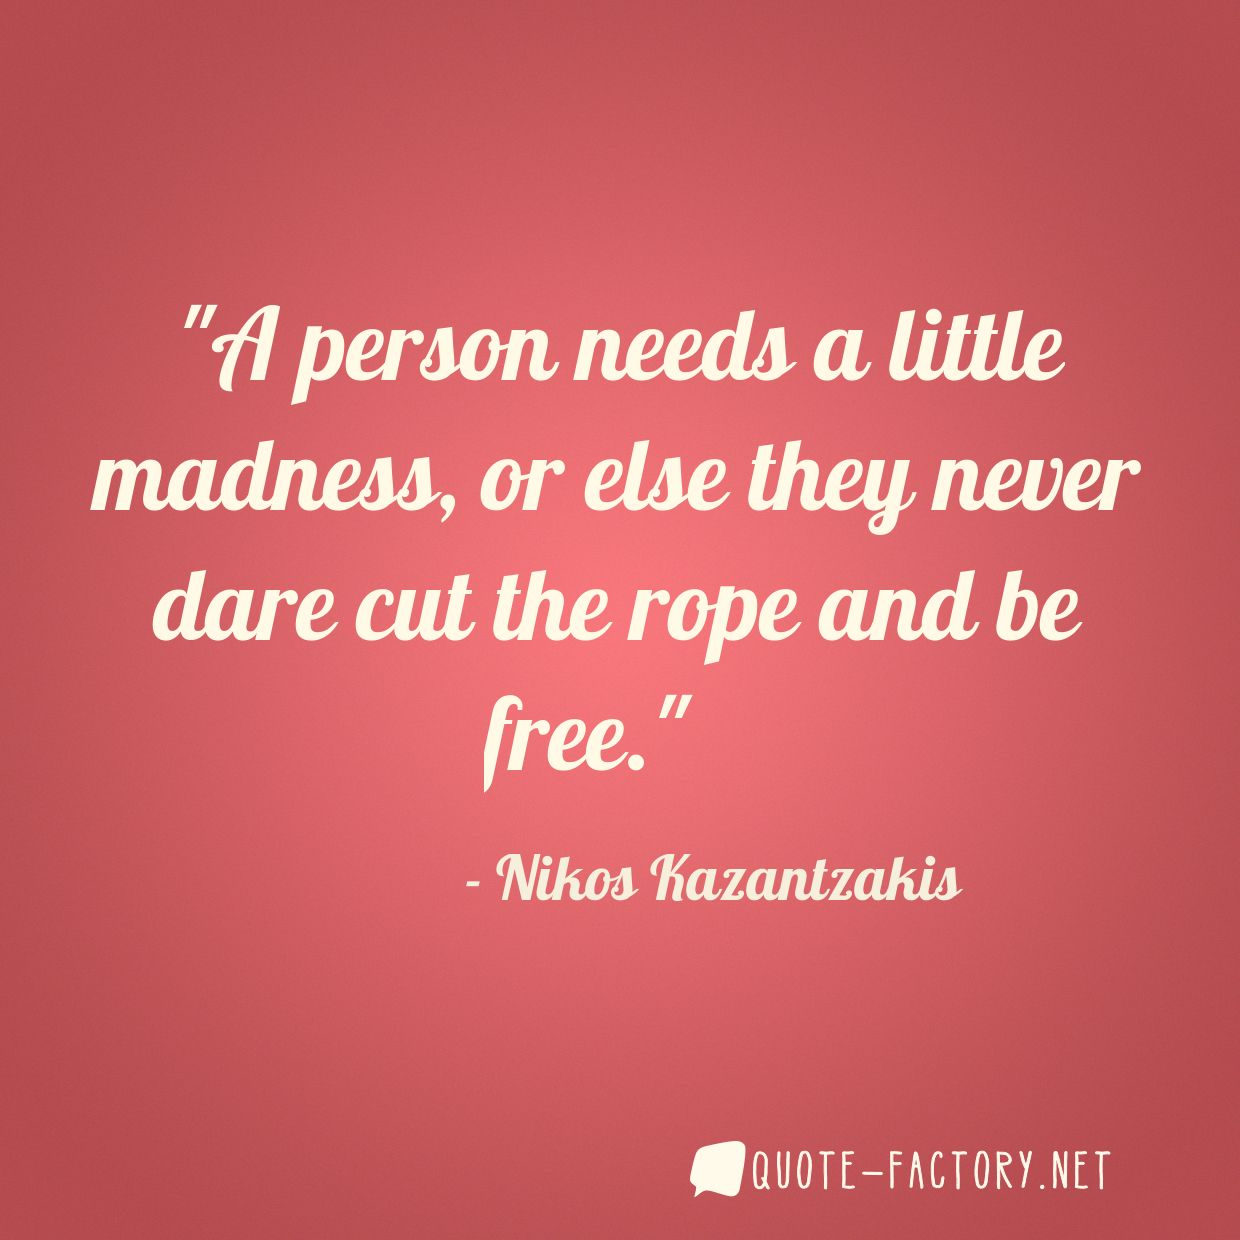 A person needs a little madness, or else they never dare cut the rope and be free.